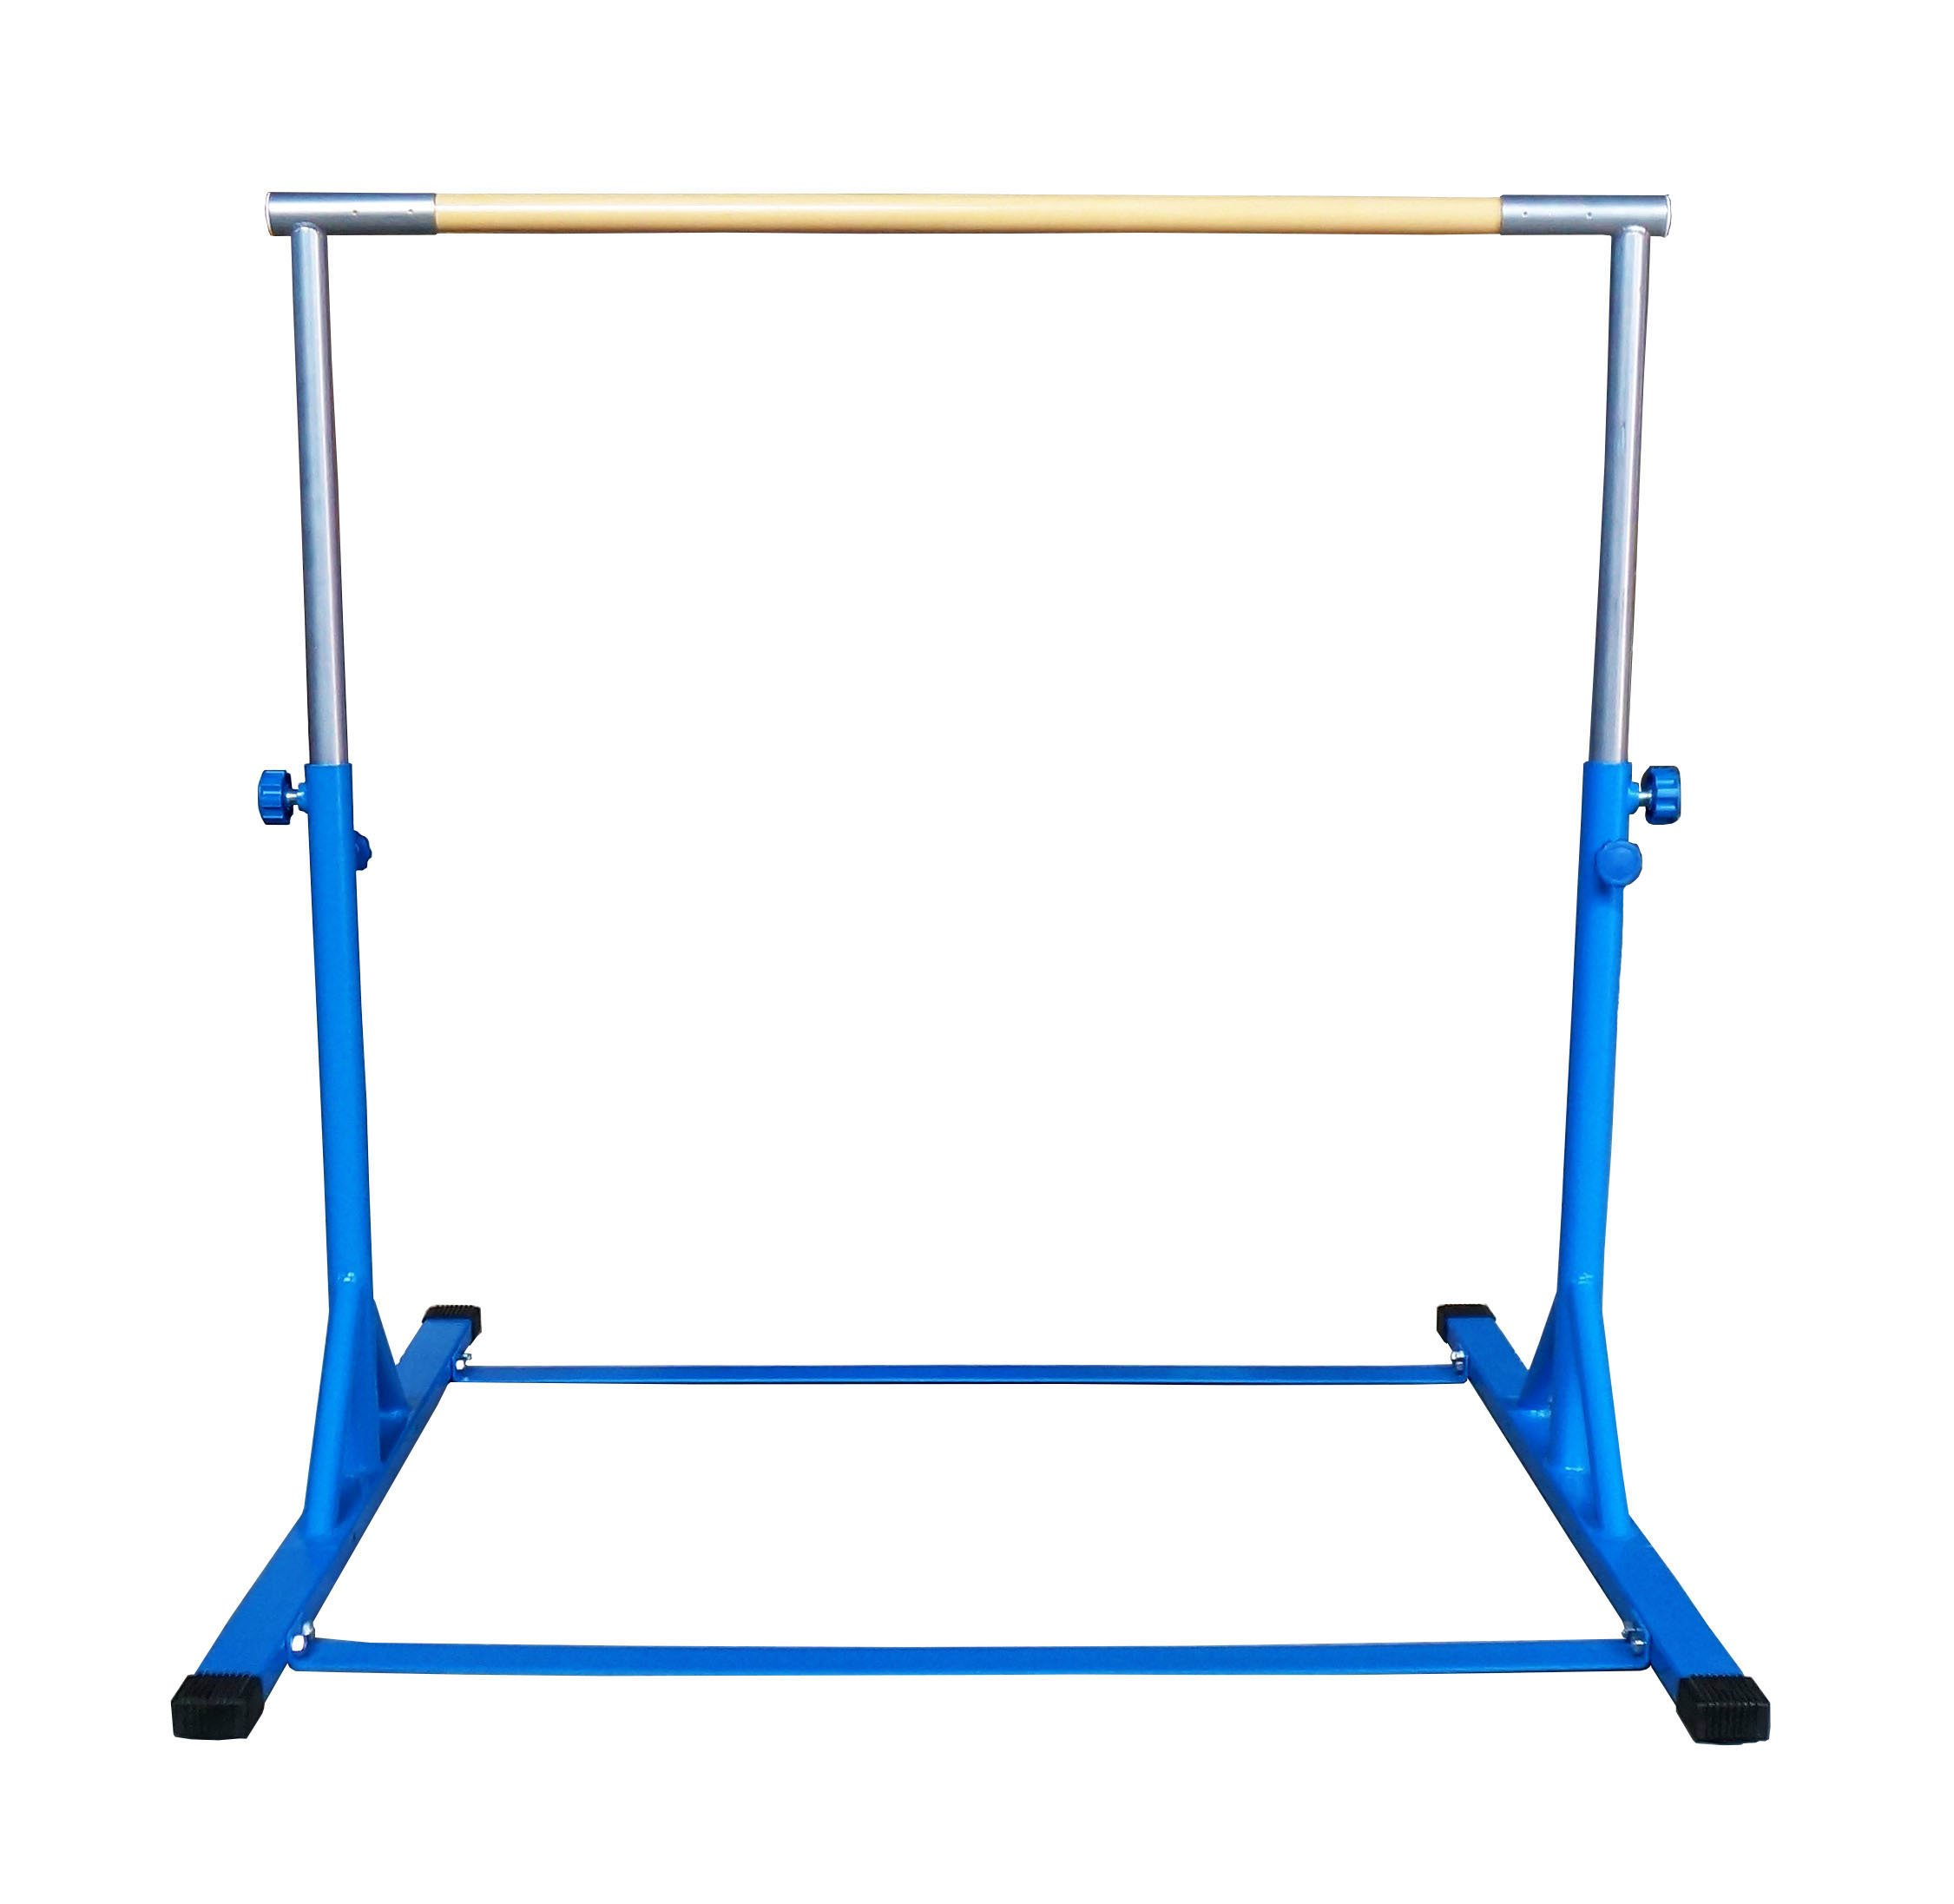 Z-Athletic Gymnastics Expandable Kip Bar (Blue)